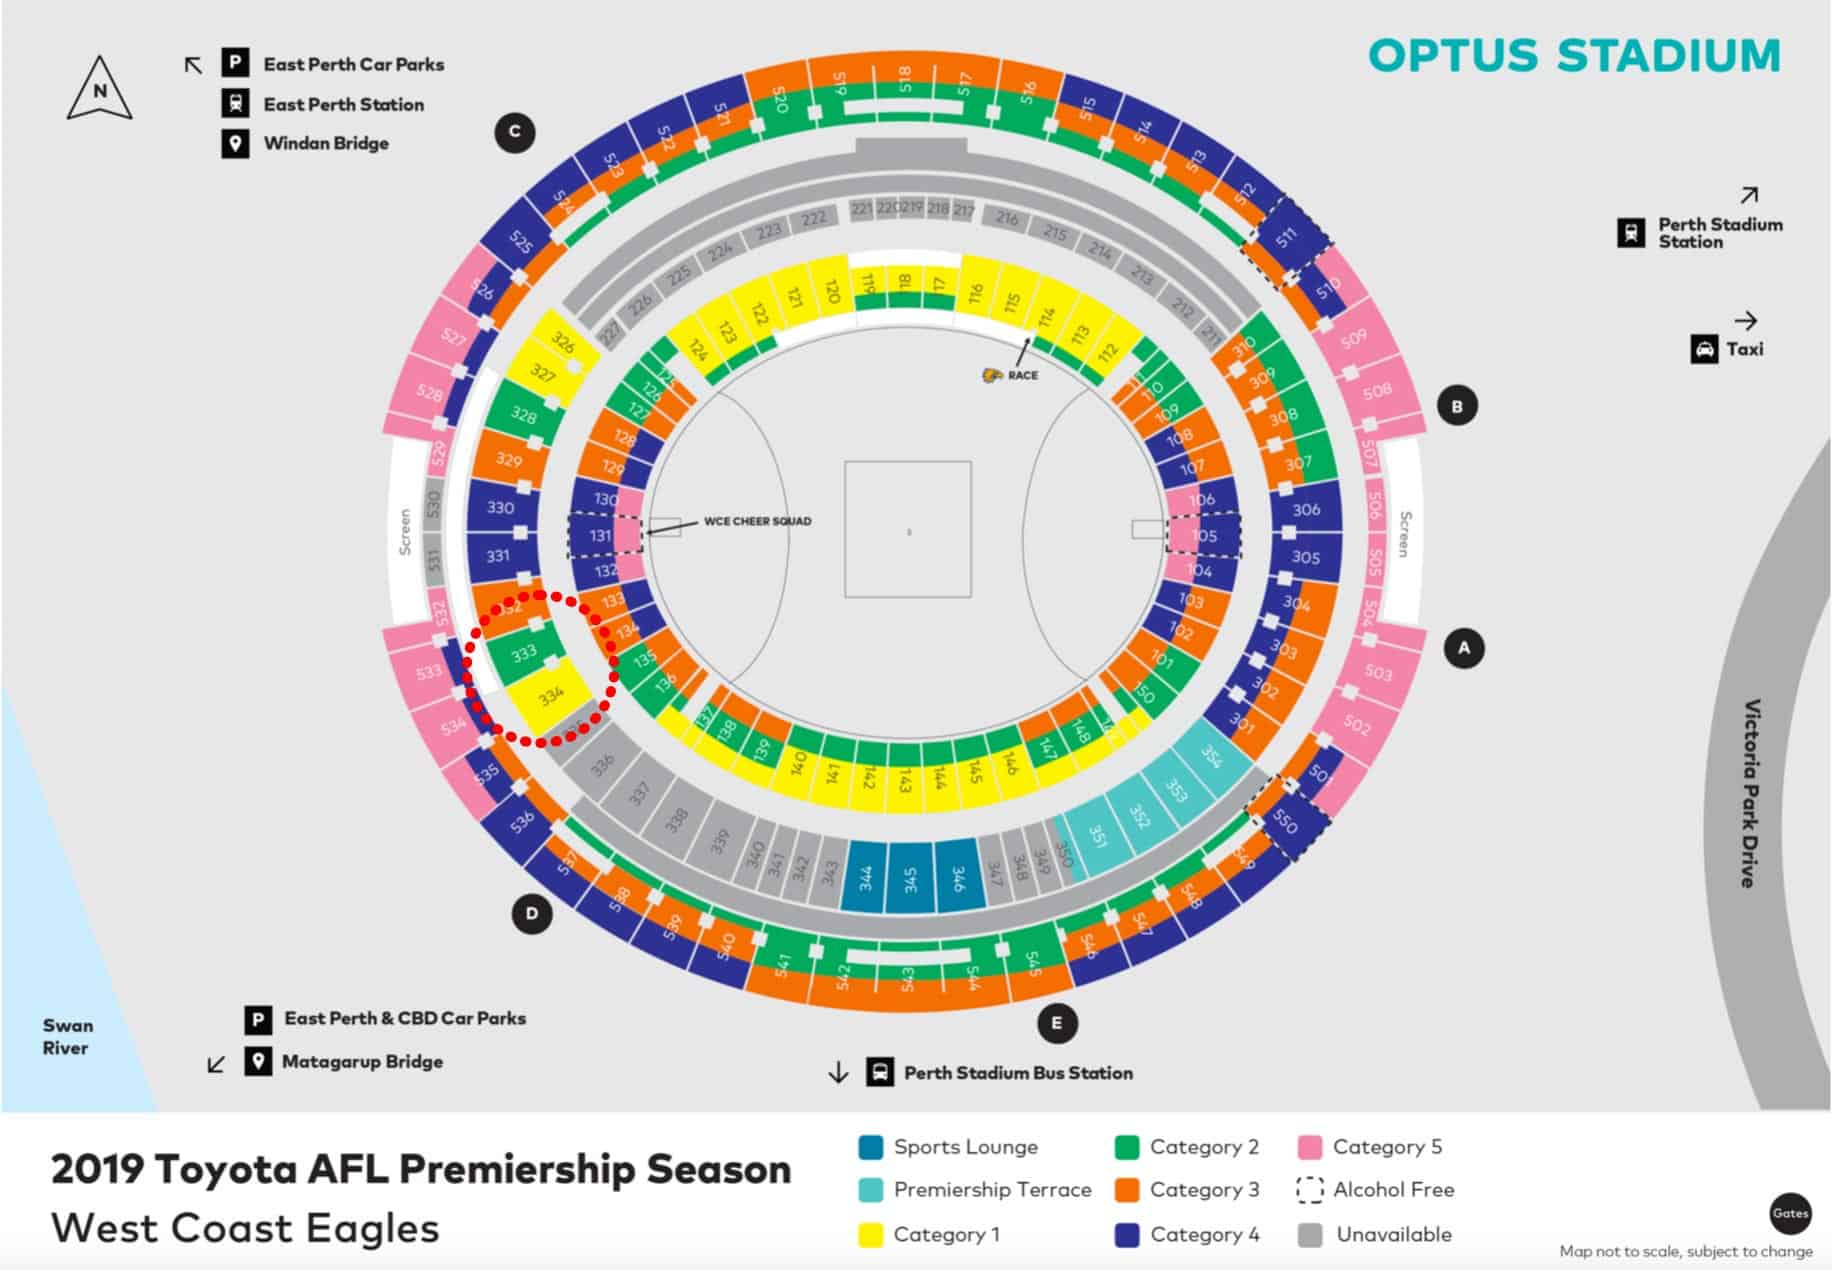 Optus Stadium Map - West Coast Eagles